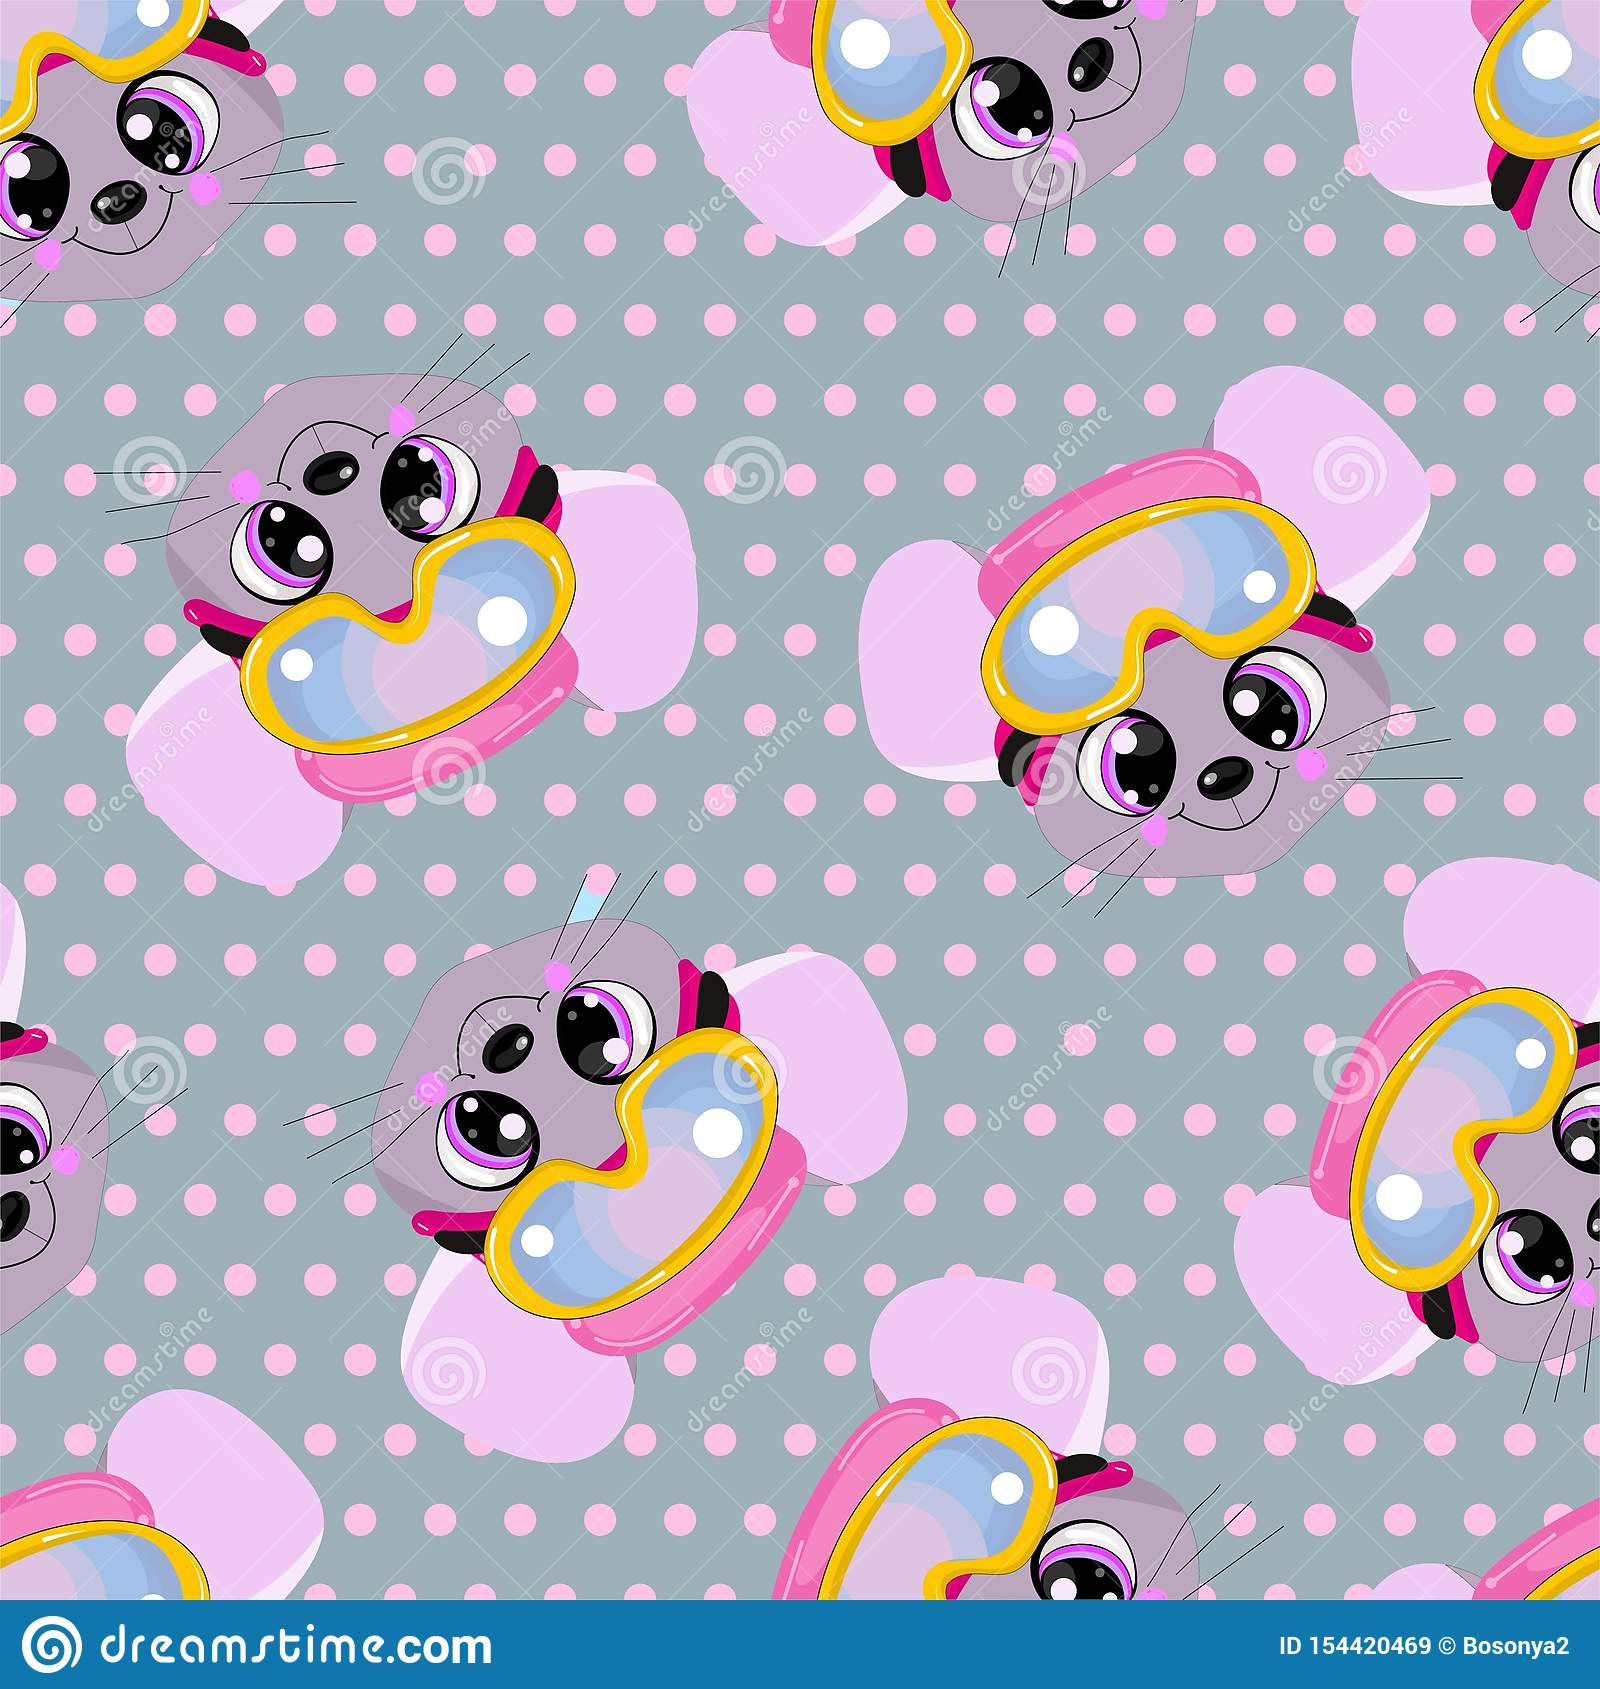 Seamless pattern for baby clothes. podnunki, undershirts and diapers with cute animals in polka dots